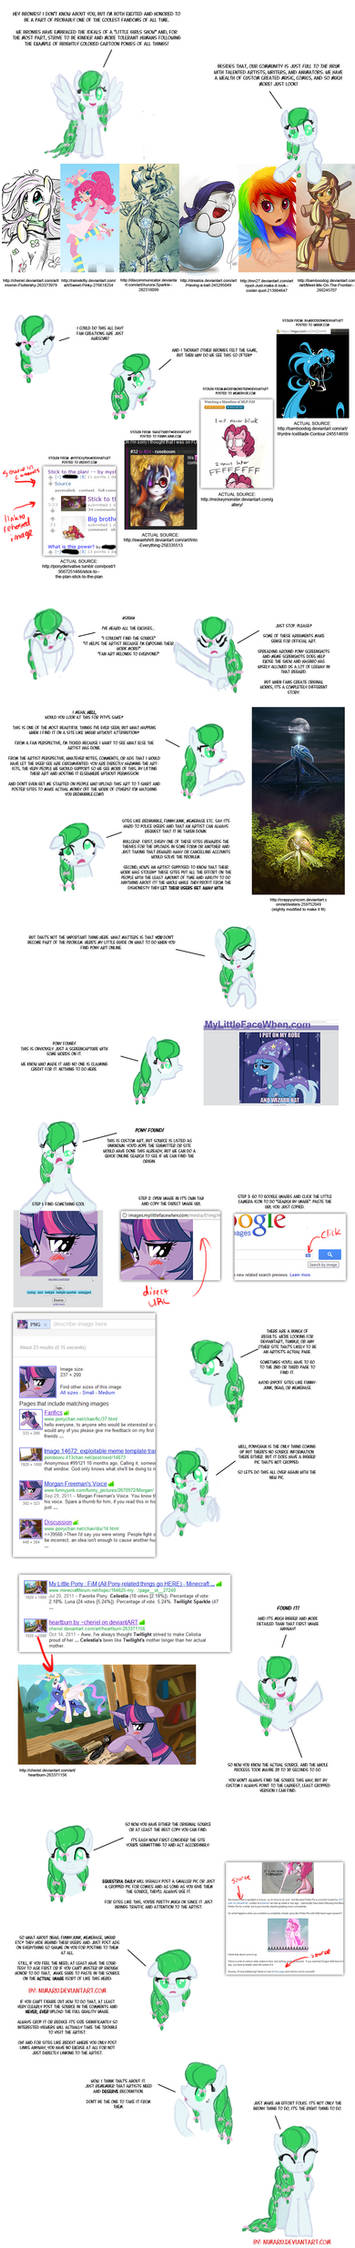 Pony Service Announcement!